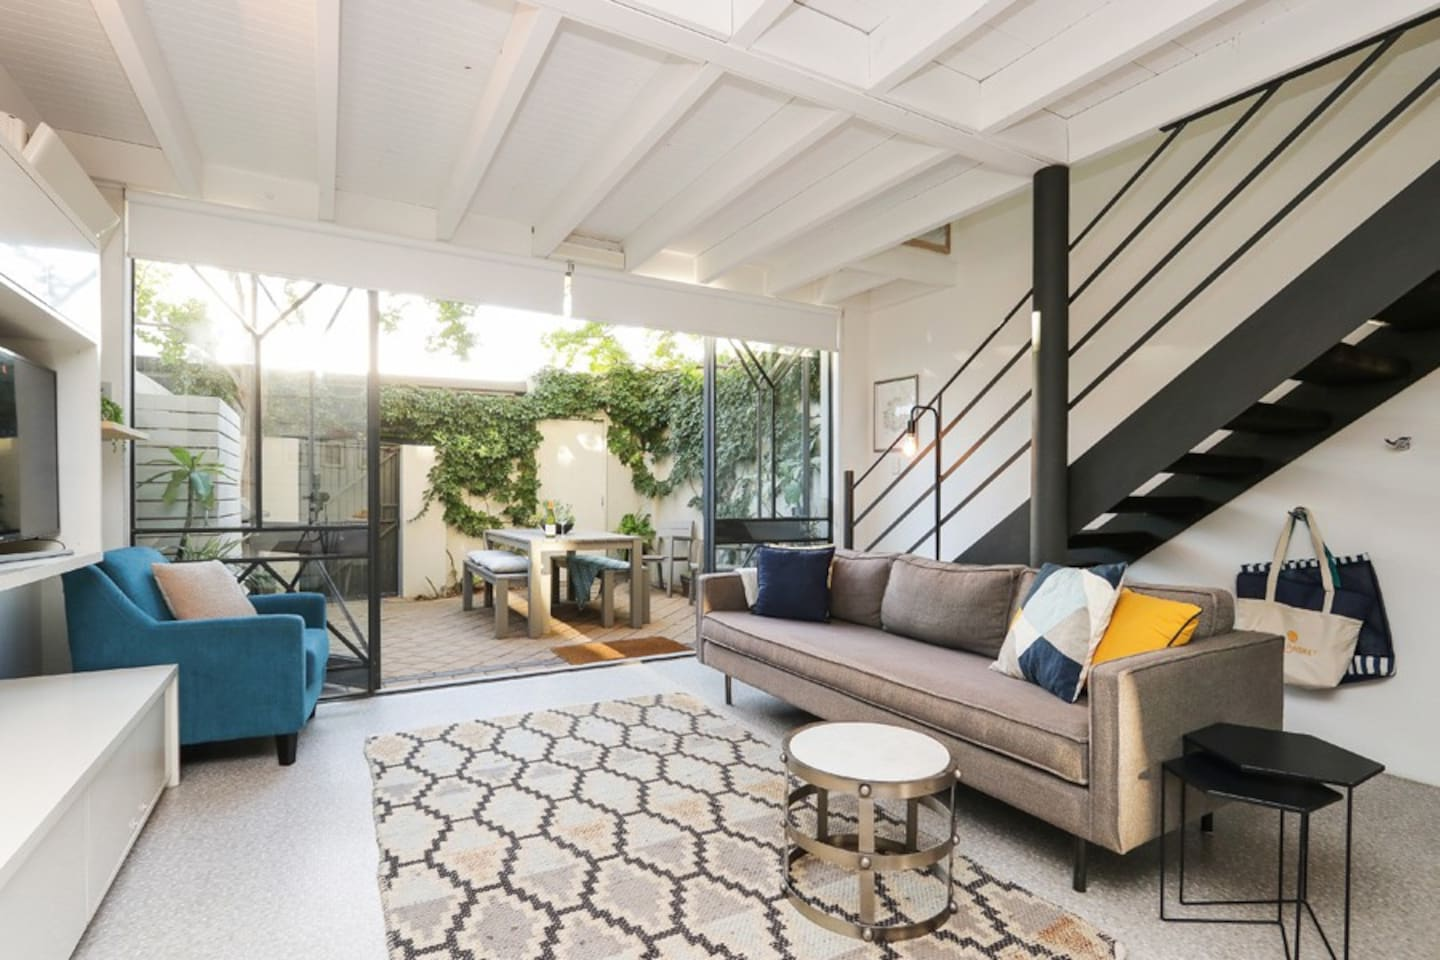 Open plan living area flows into the private courtyard (Please note the property has just been painted so the vine in the courtyard has been removed and replanted)